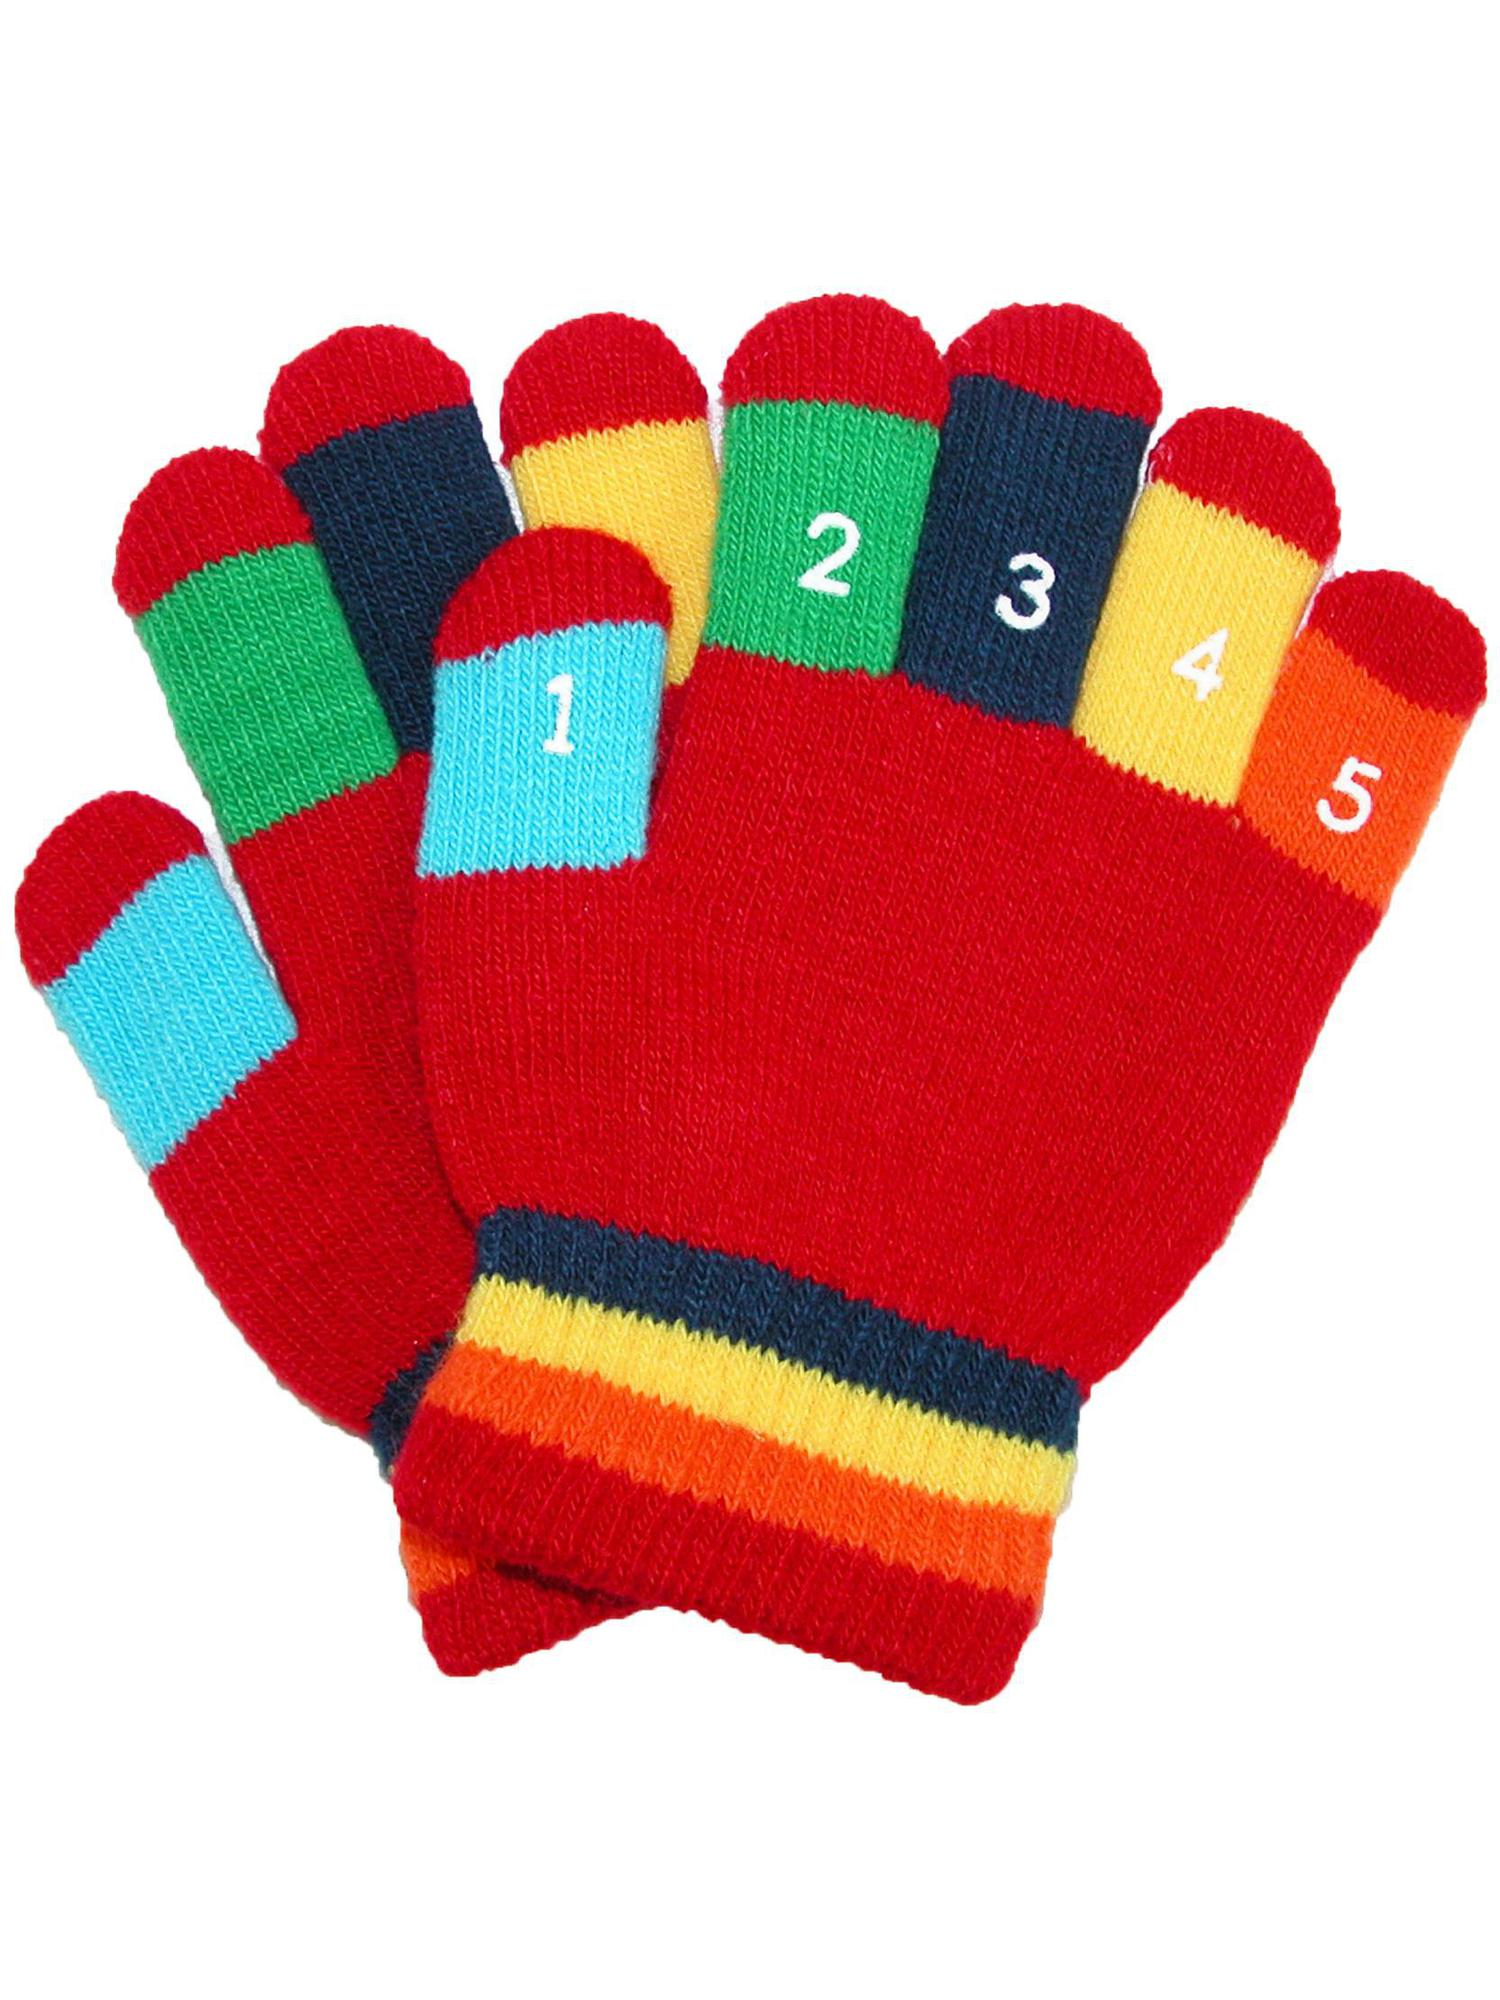 Blue Grand Sierra Toddler 2-4T Knit Stretch Counting Gloves